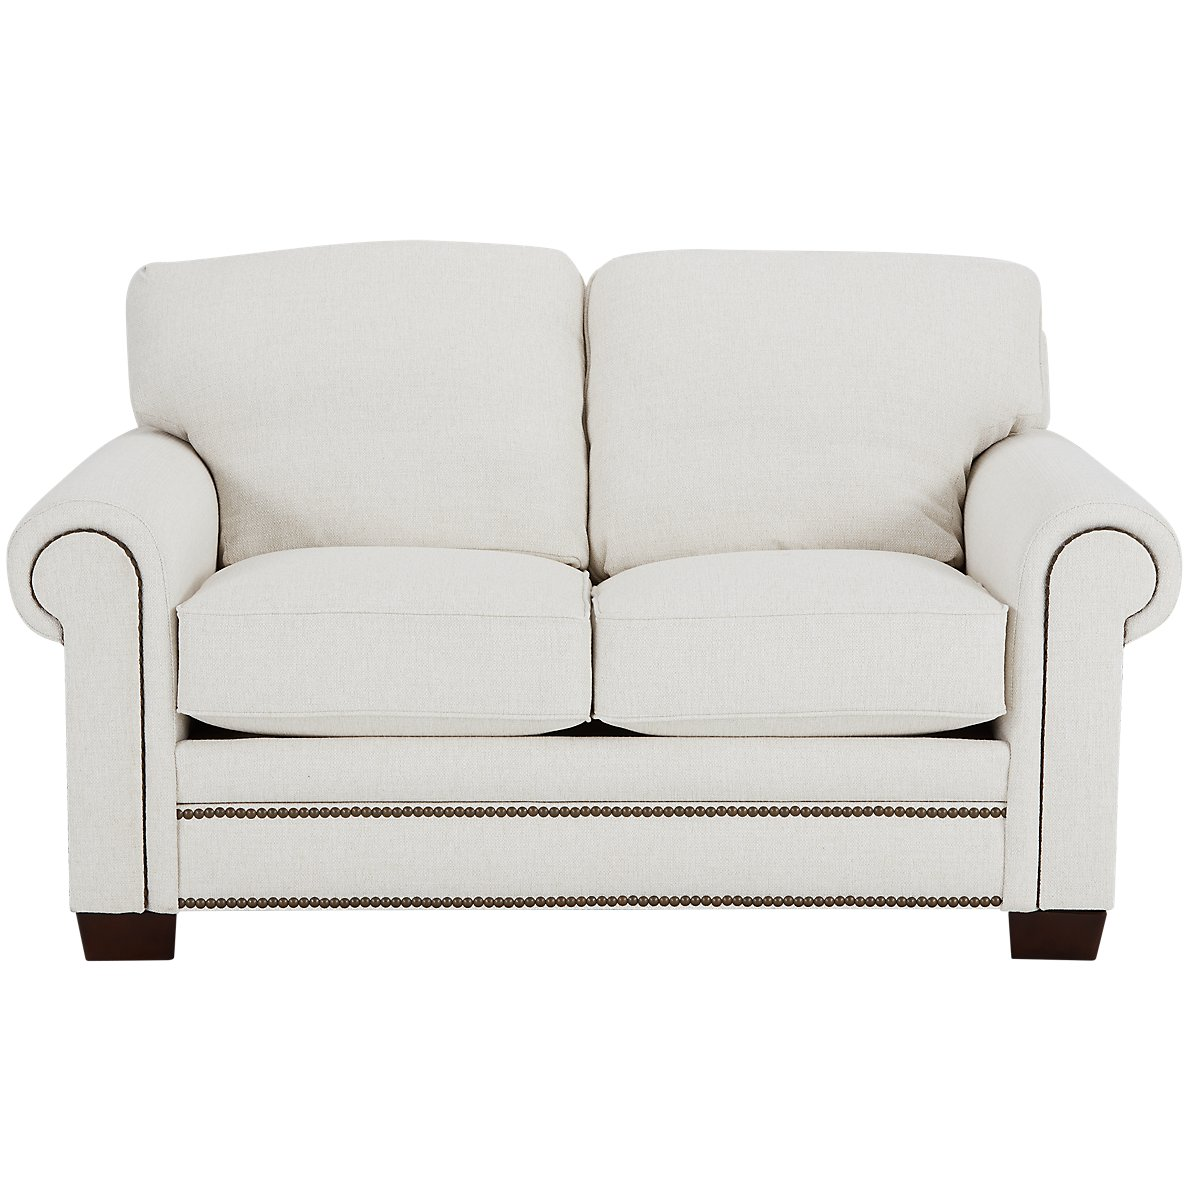 City Furniture Foster White Fabric Loveseat